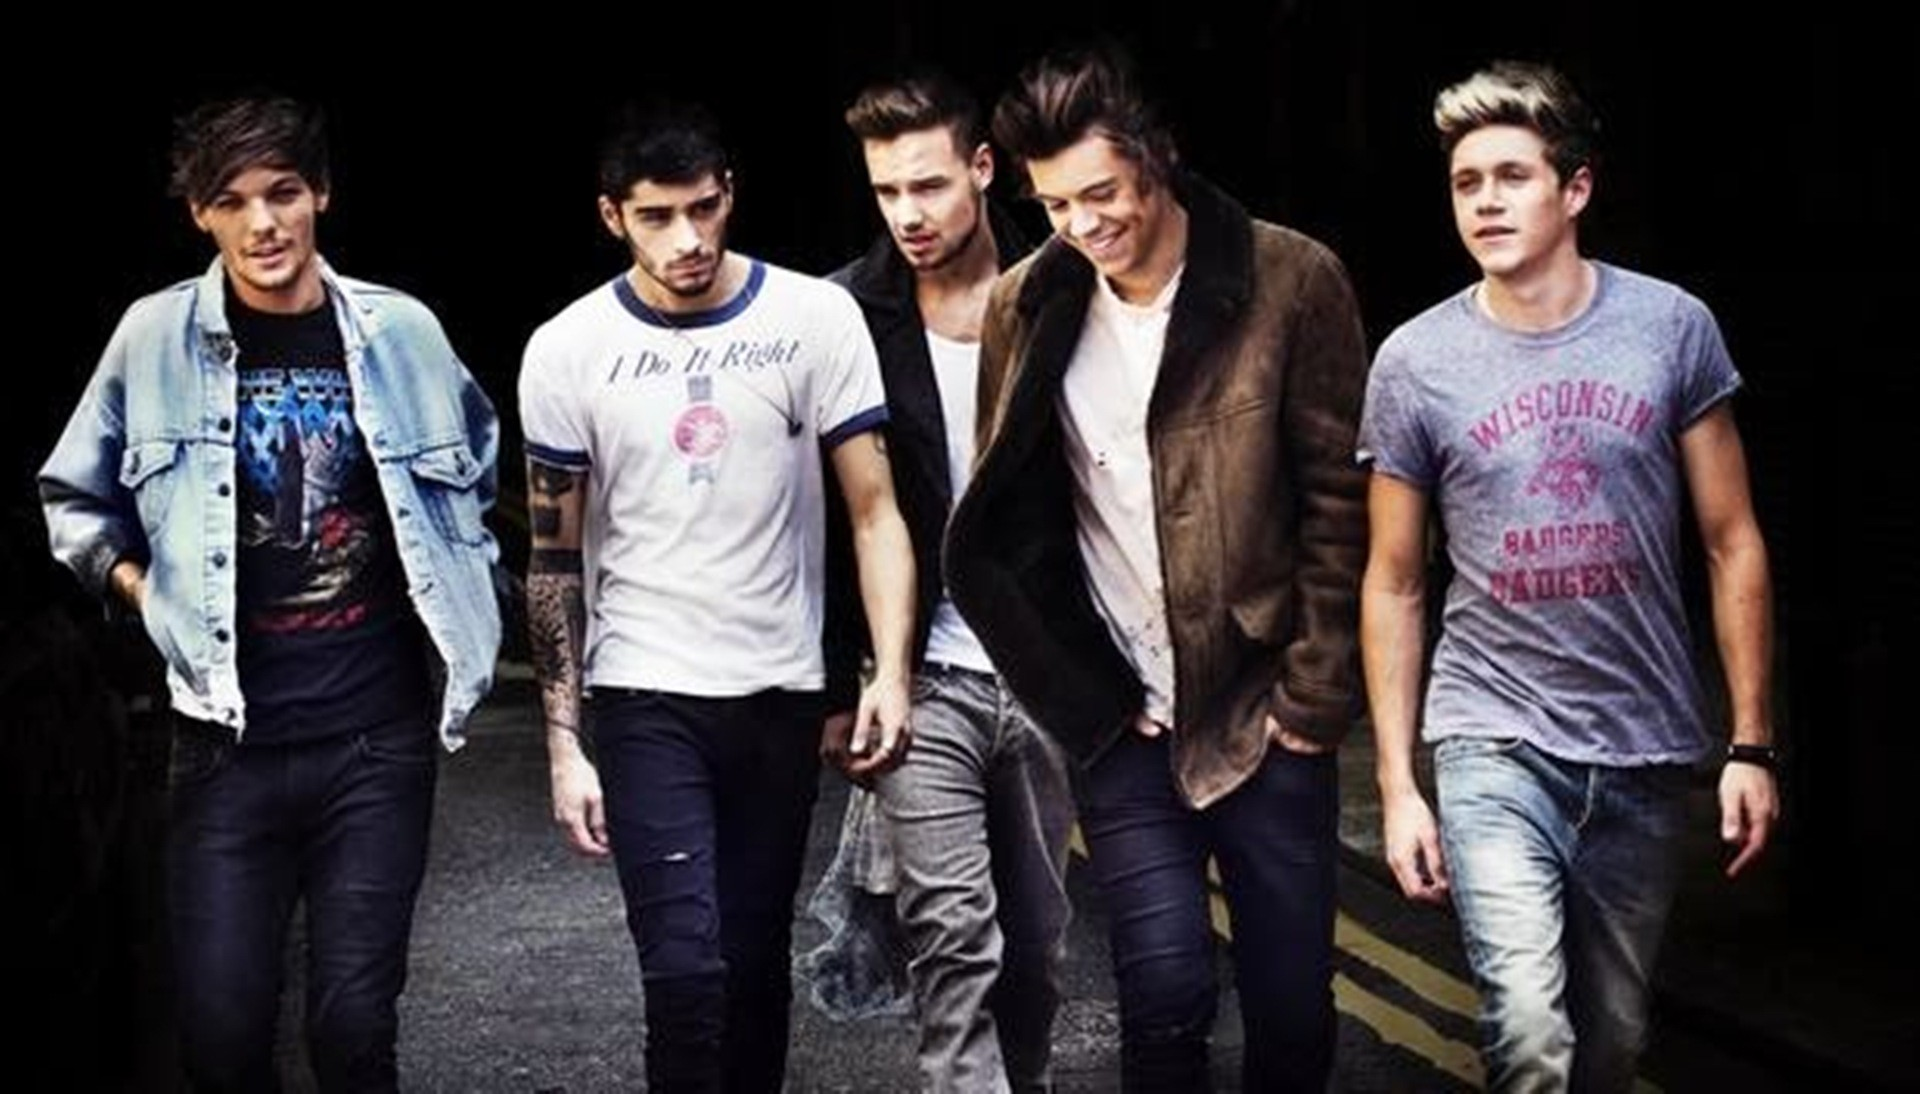 Midnight Memories is a song recorded by English-Irish boy band One Direction  from their third studio album of the same name.